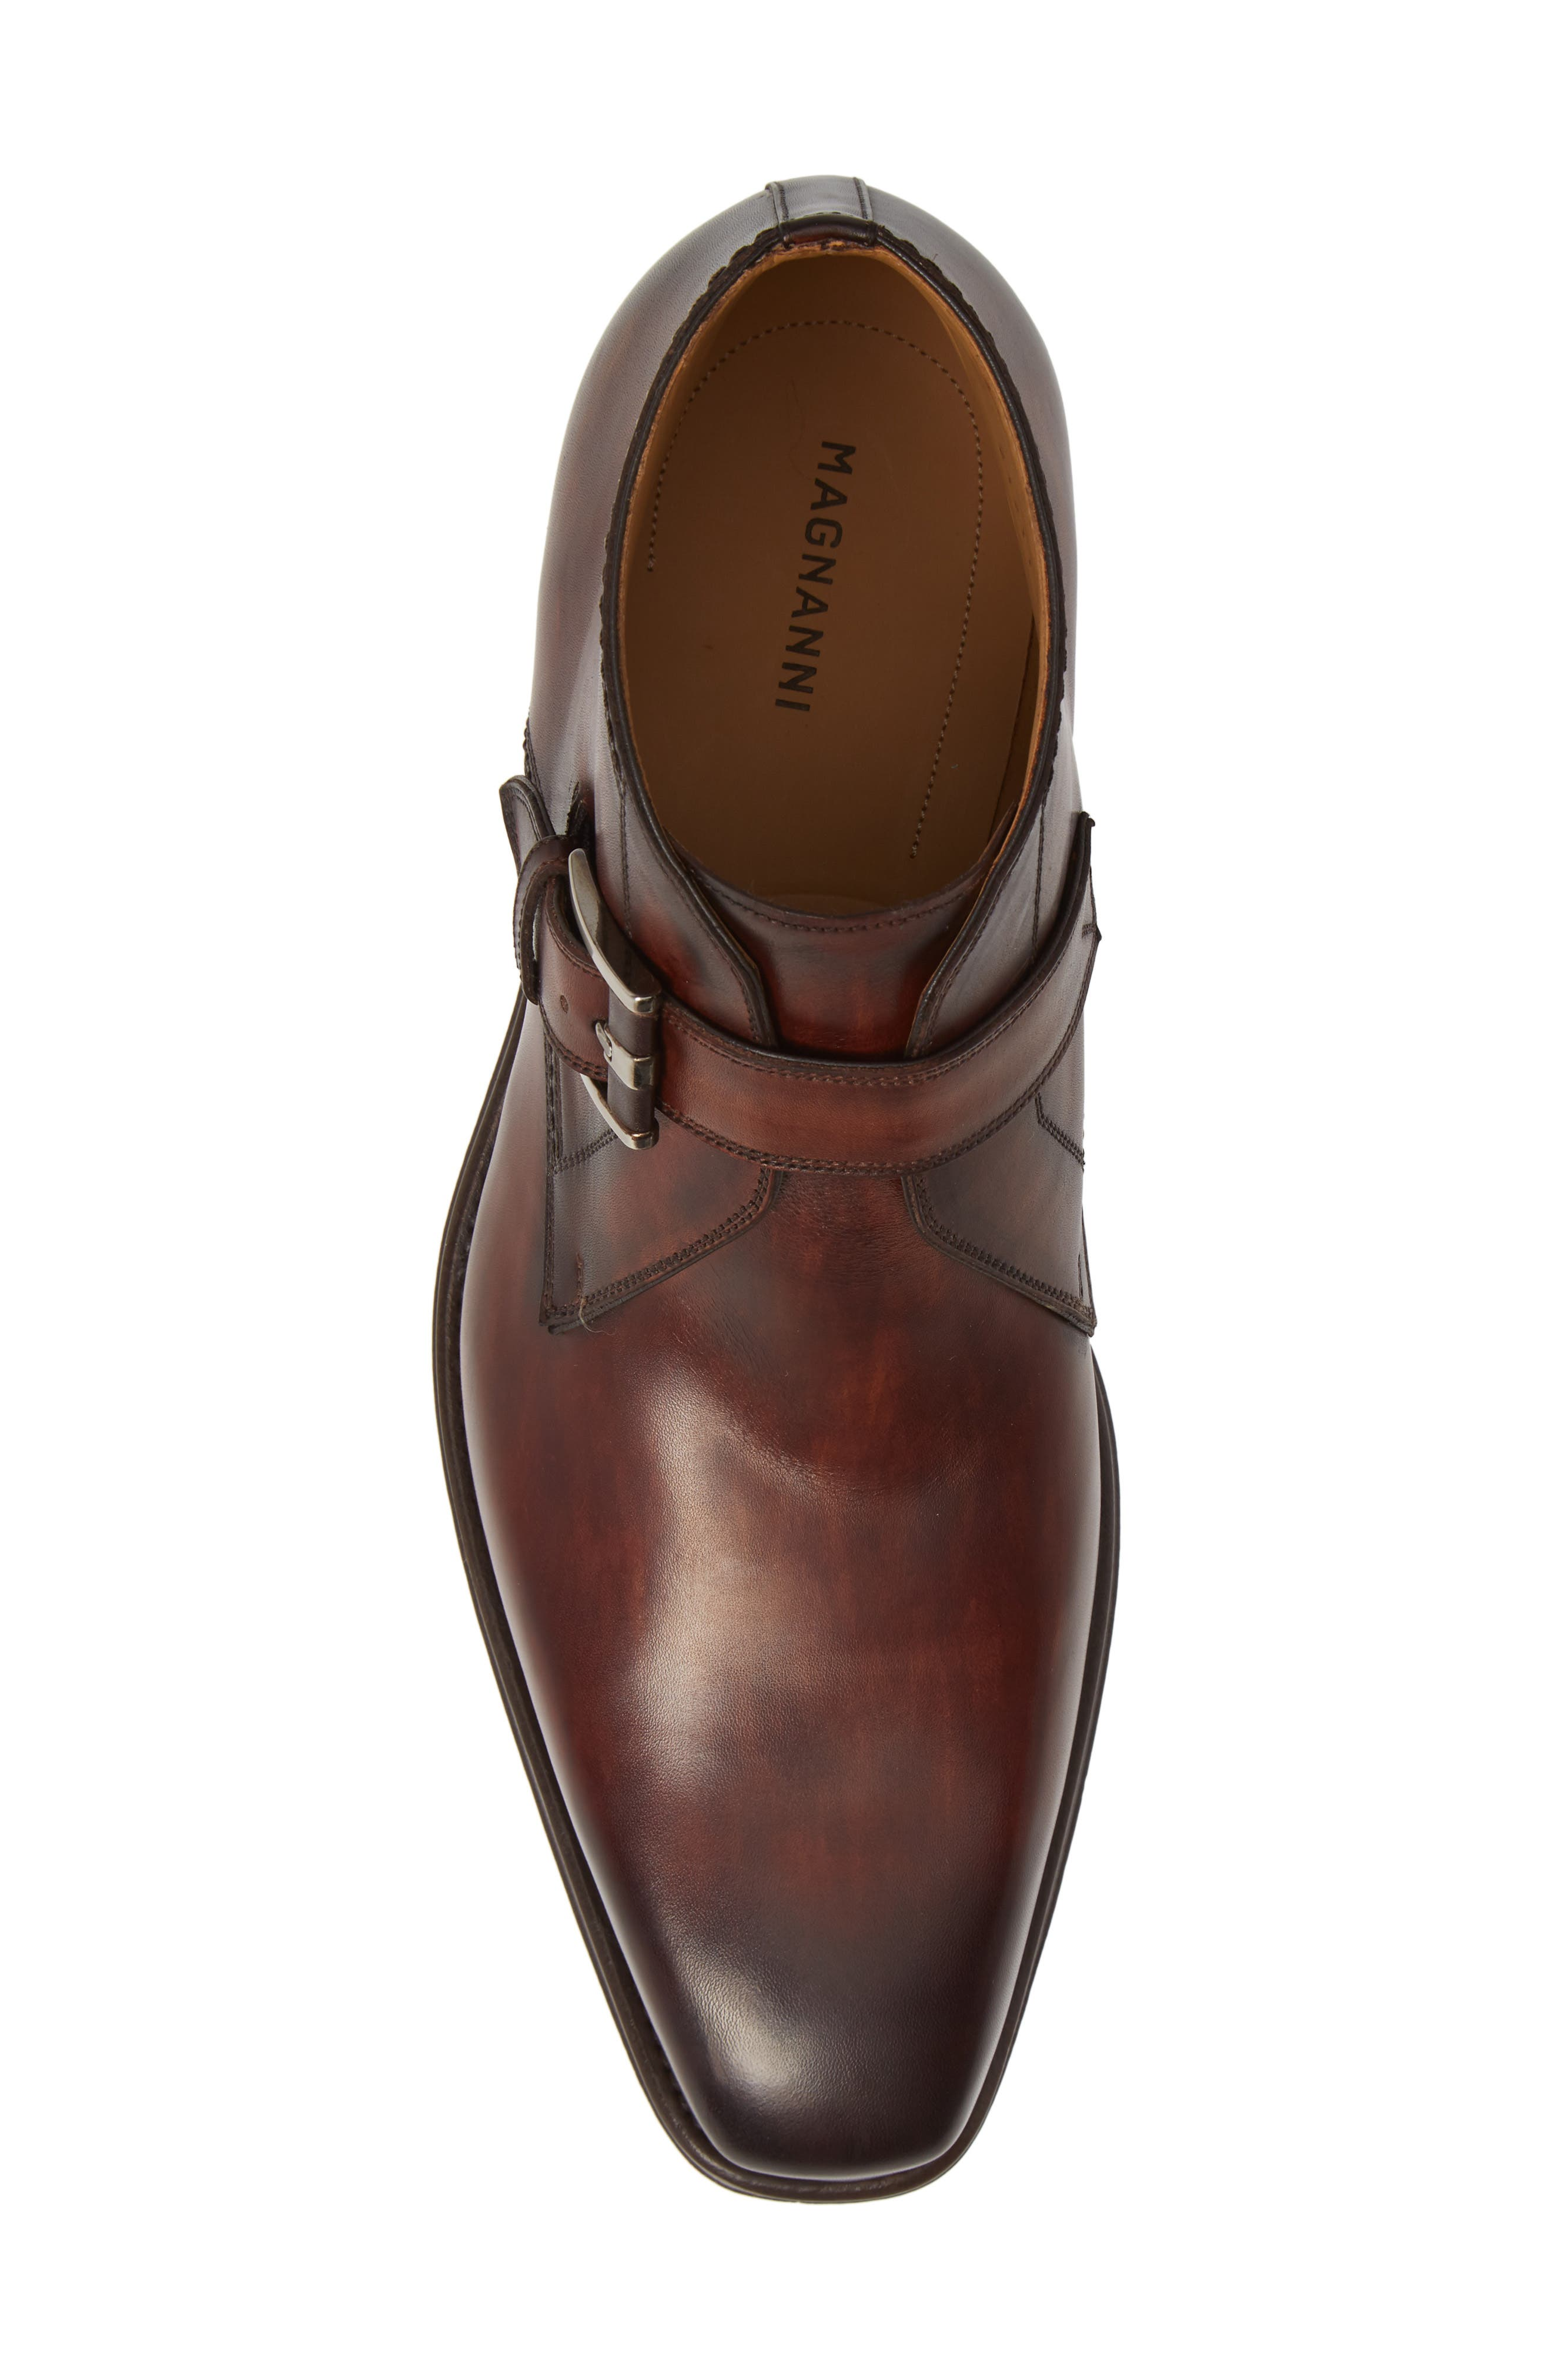 MAGNANNI,                             Luka Monk Strap Boot,                             Alternate thumbnail 5, color,                             MID BROWN LEATHER